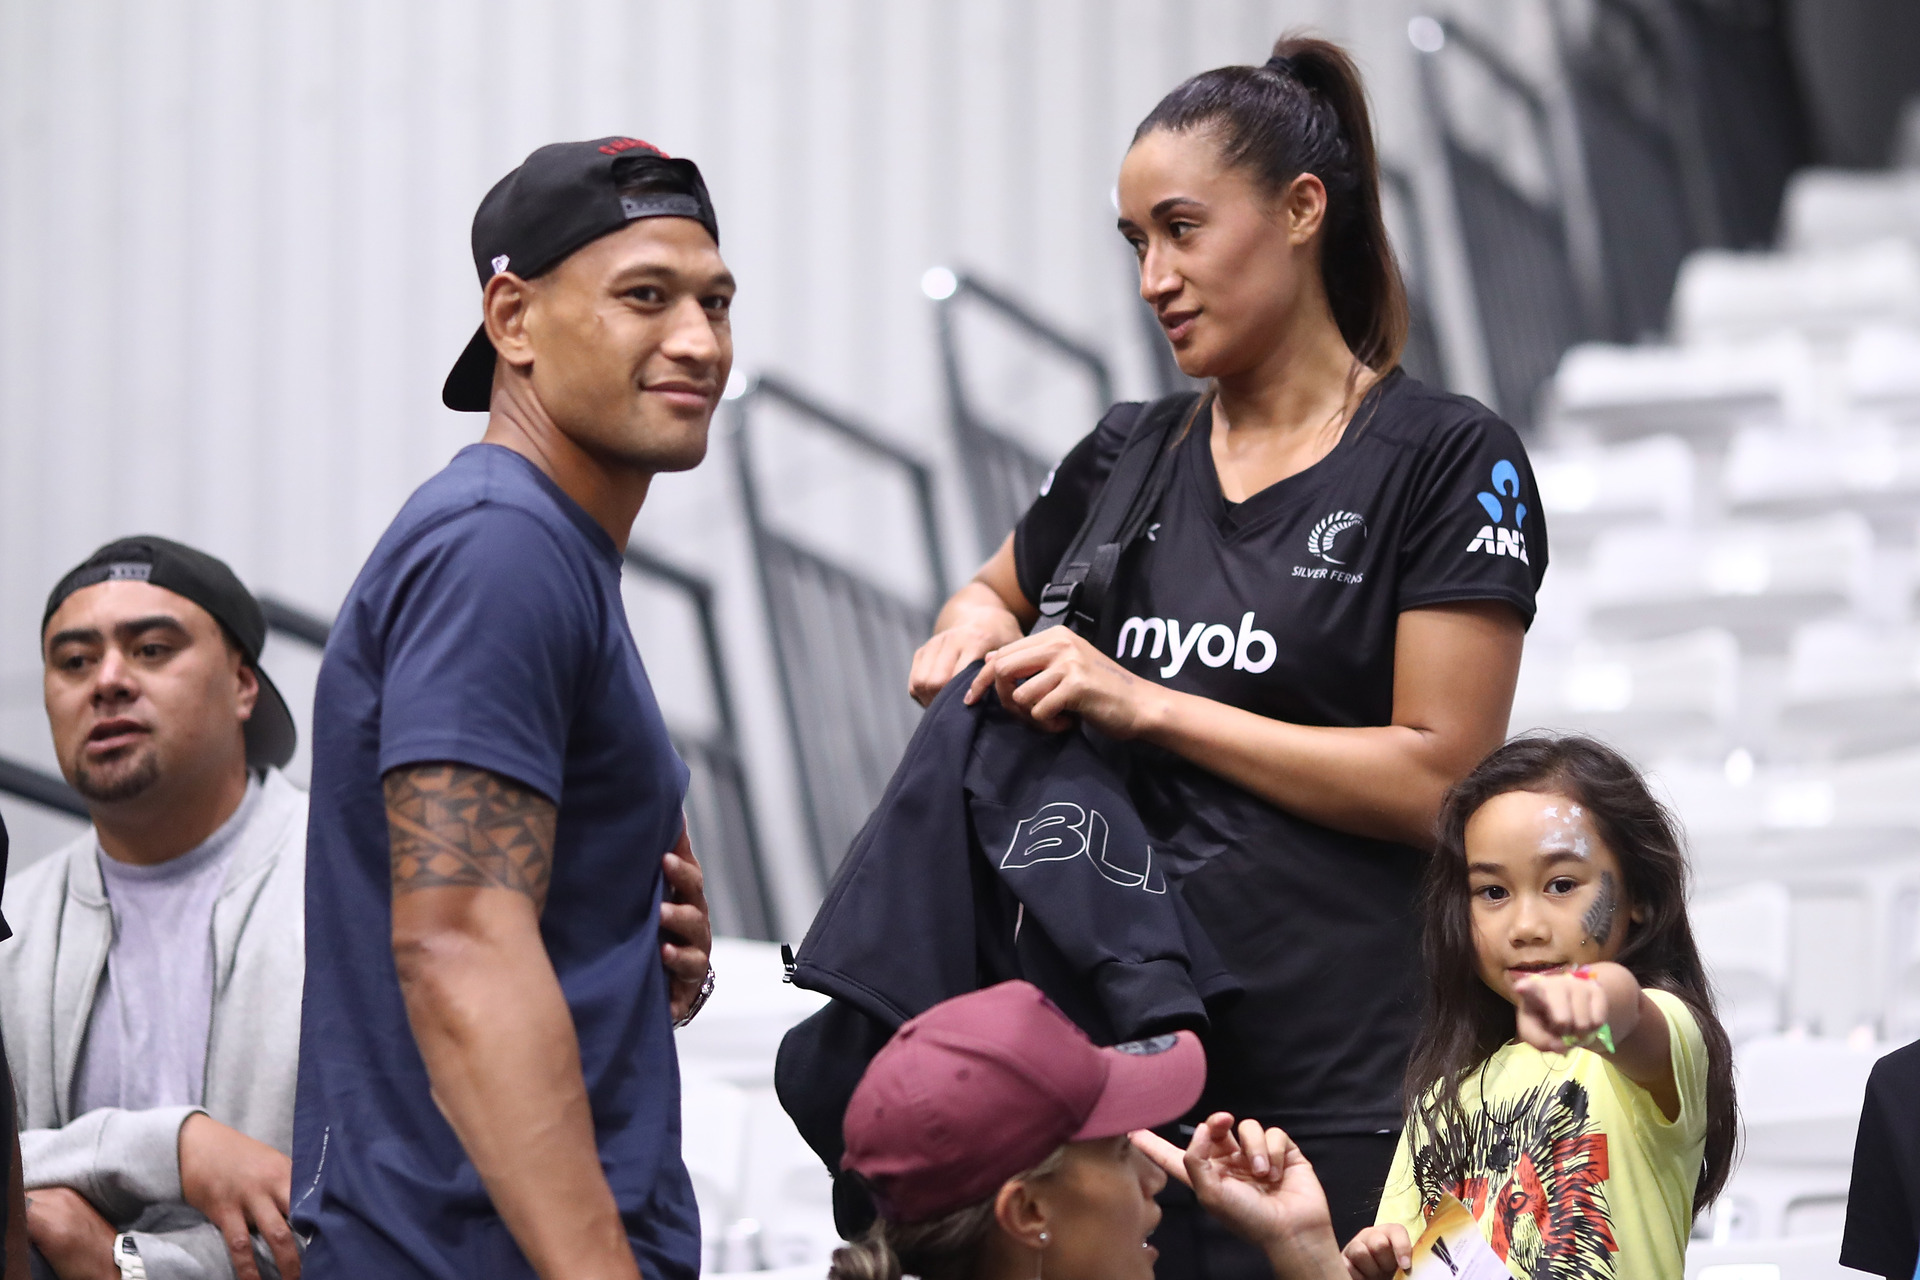 Netball: Israel Folau arrives in Liverpool to support Maria and Silver Ferns at Netball World Cup